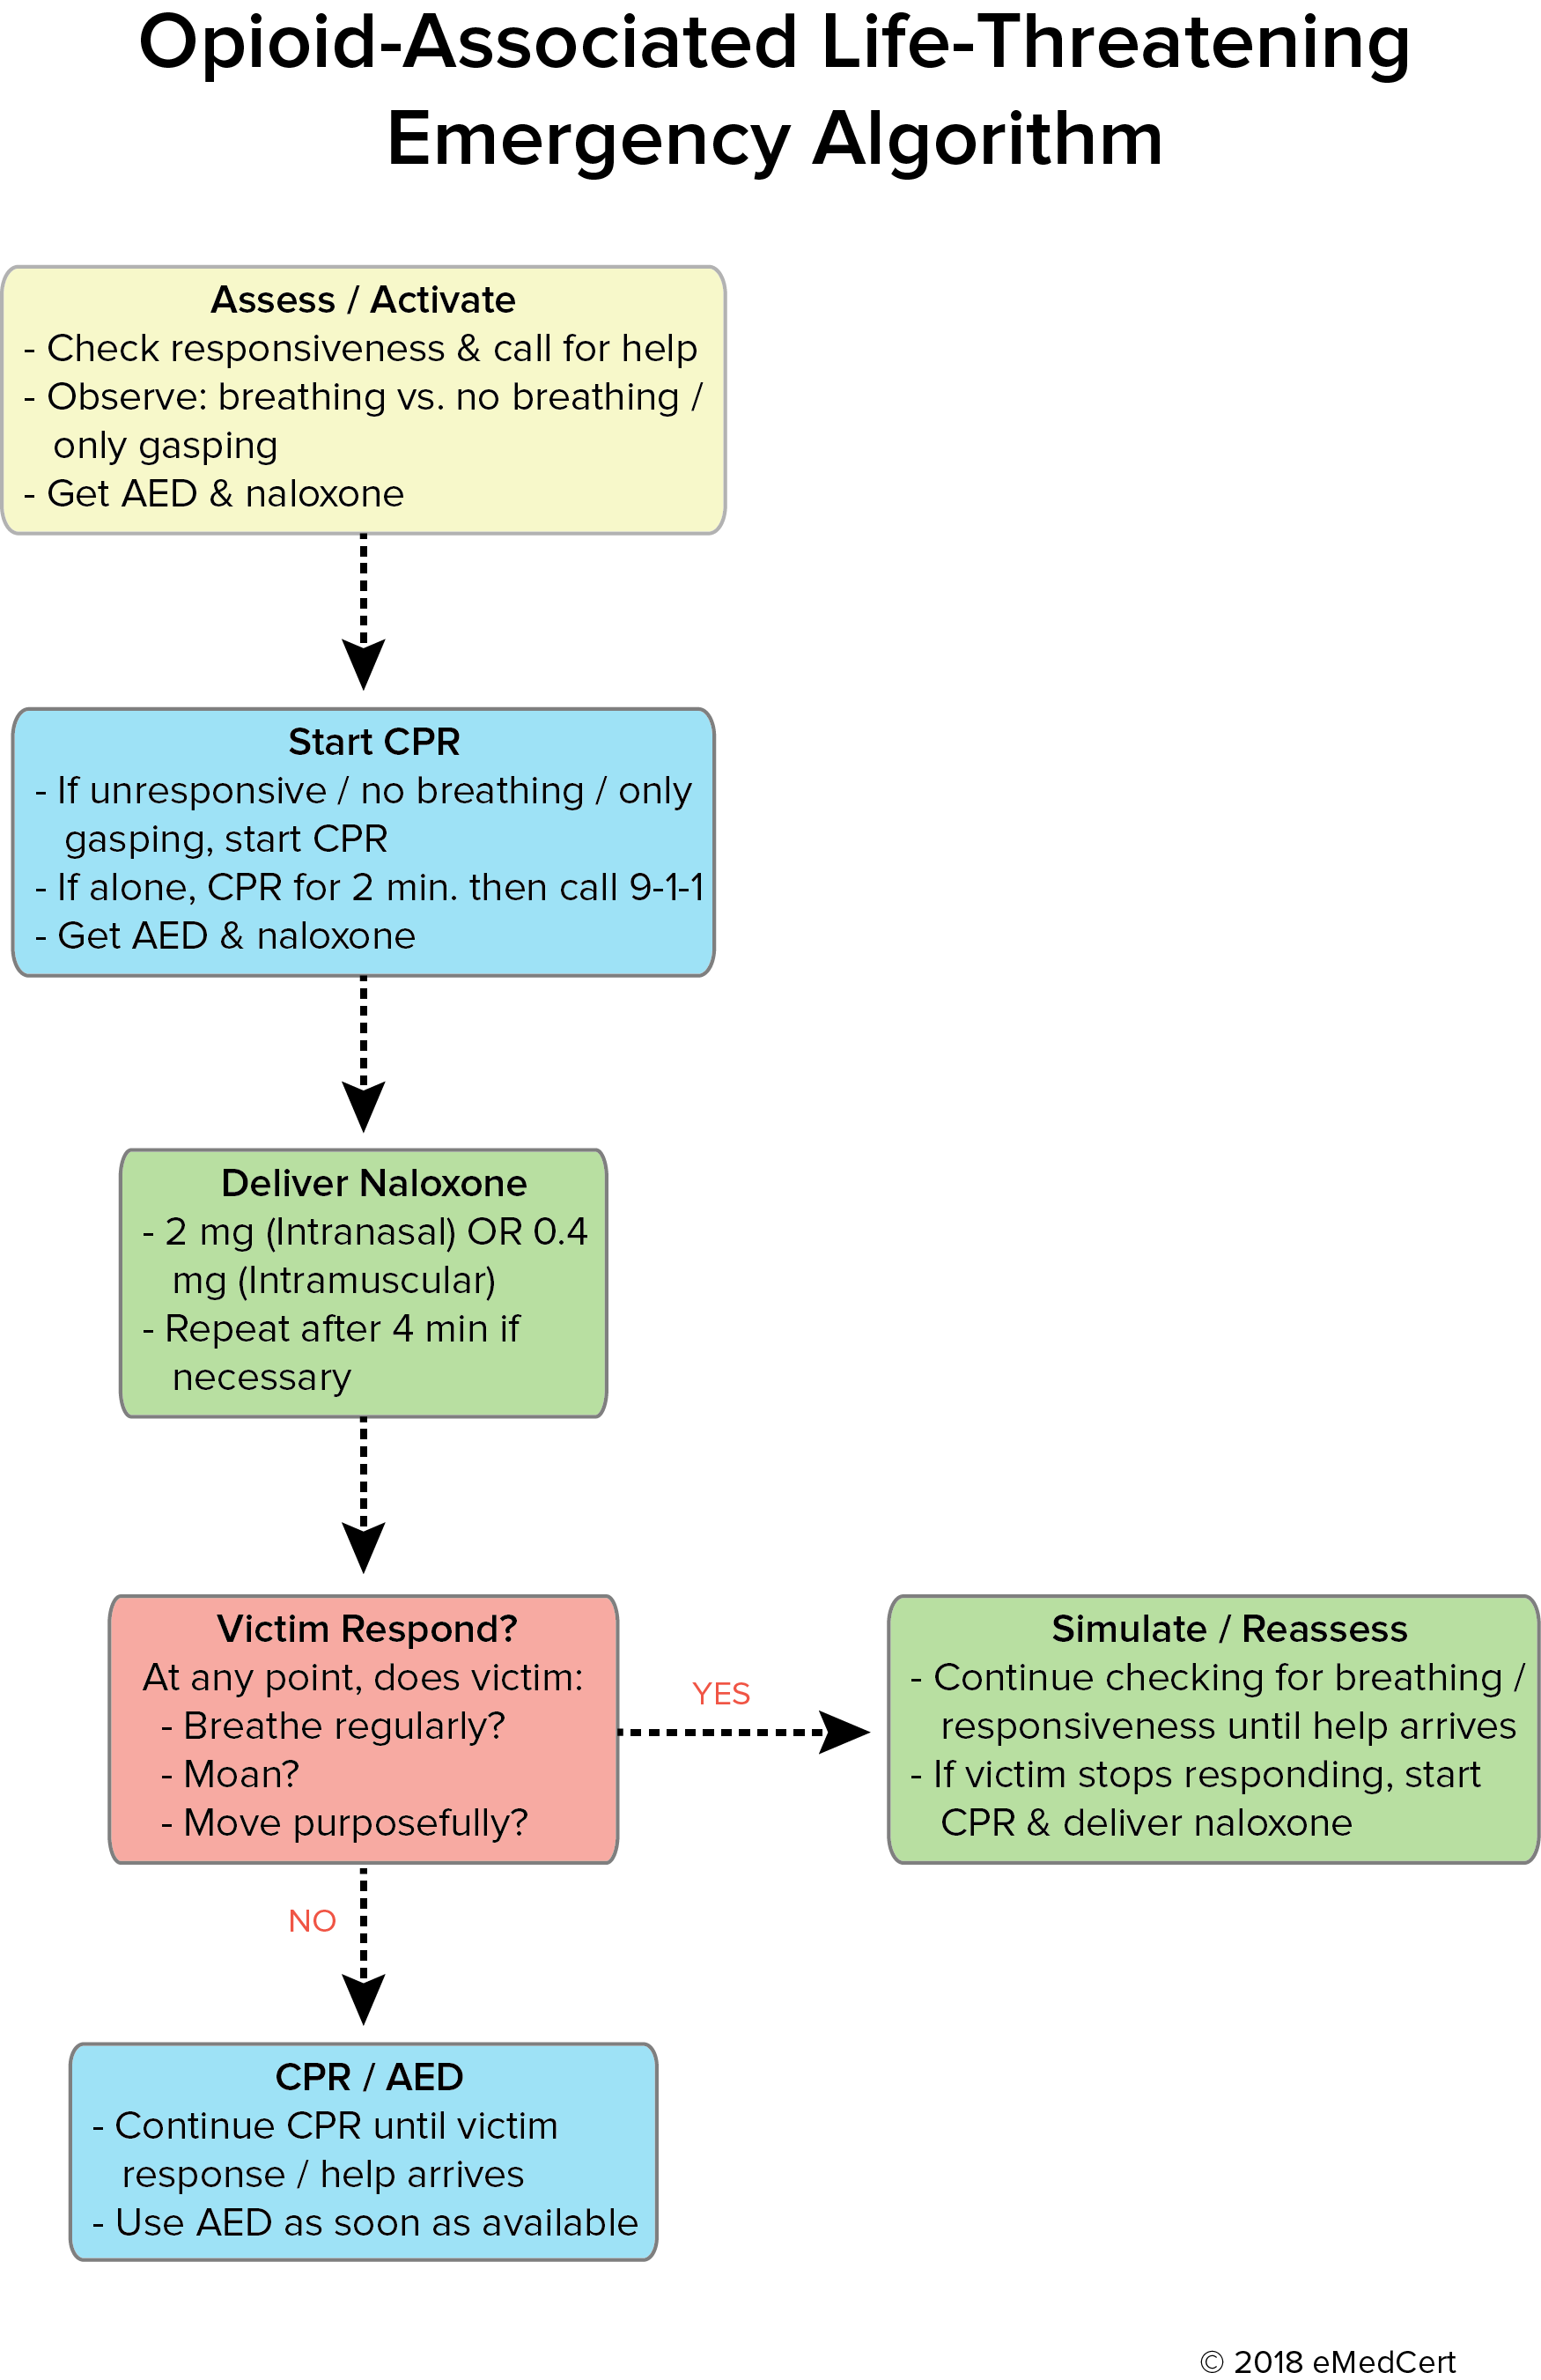 Opioid-Associated Algorithm | eMedCert